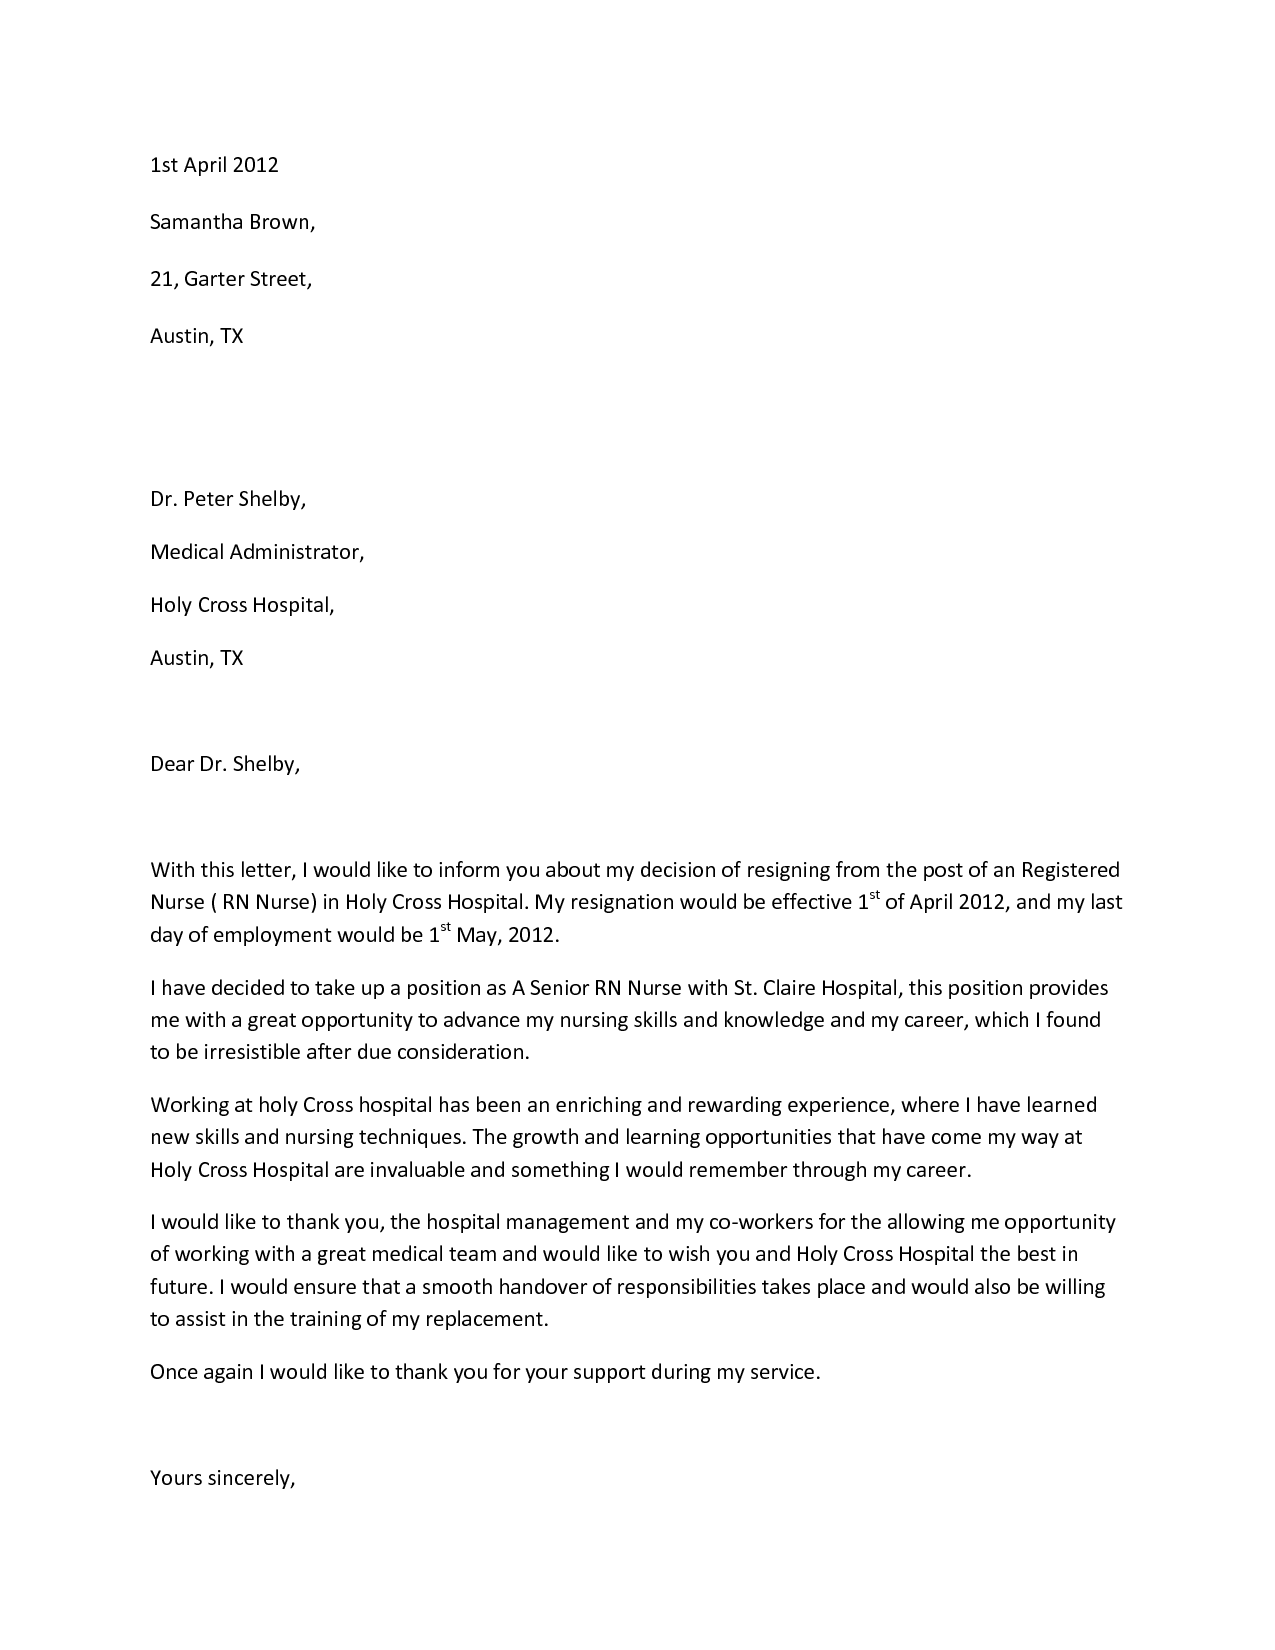 Sample Resignation LetterWriting A Letter Of Resignation Email ...